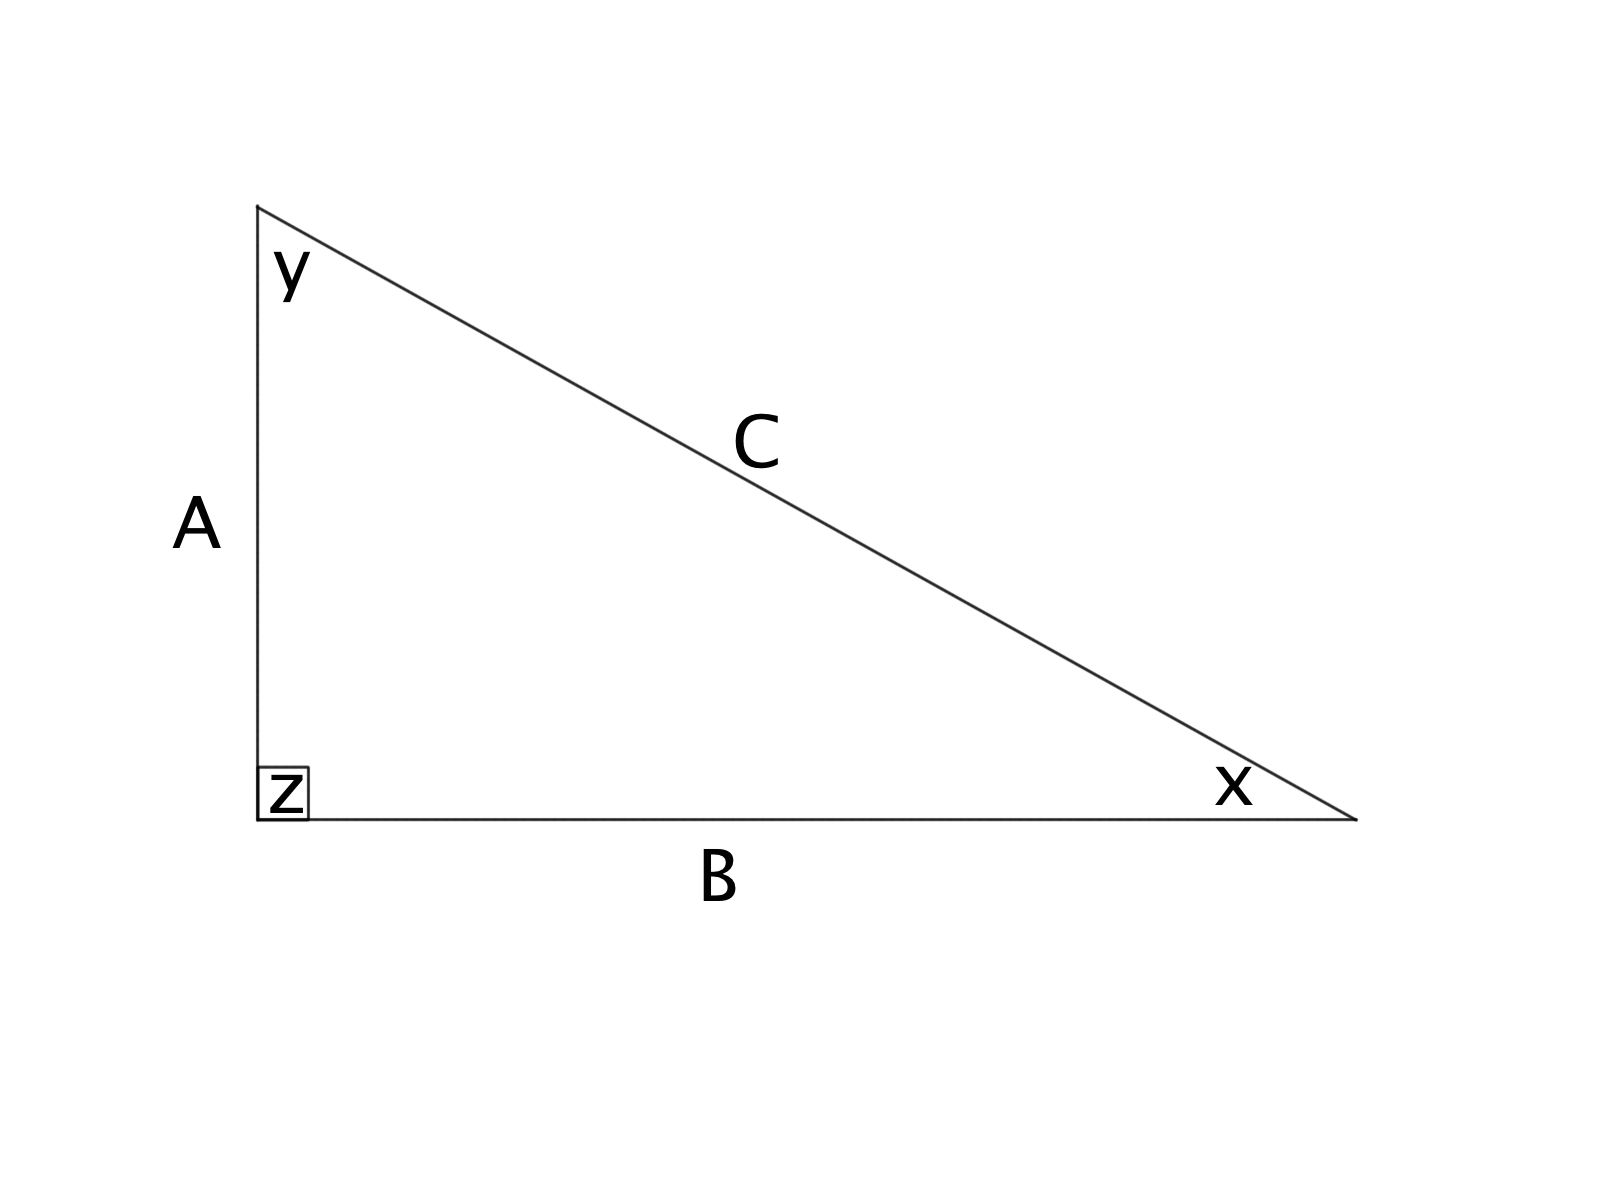 How To Find The Area Of A Right Triangle